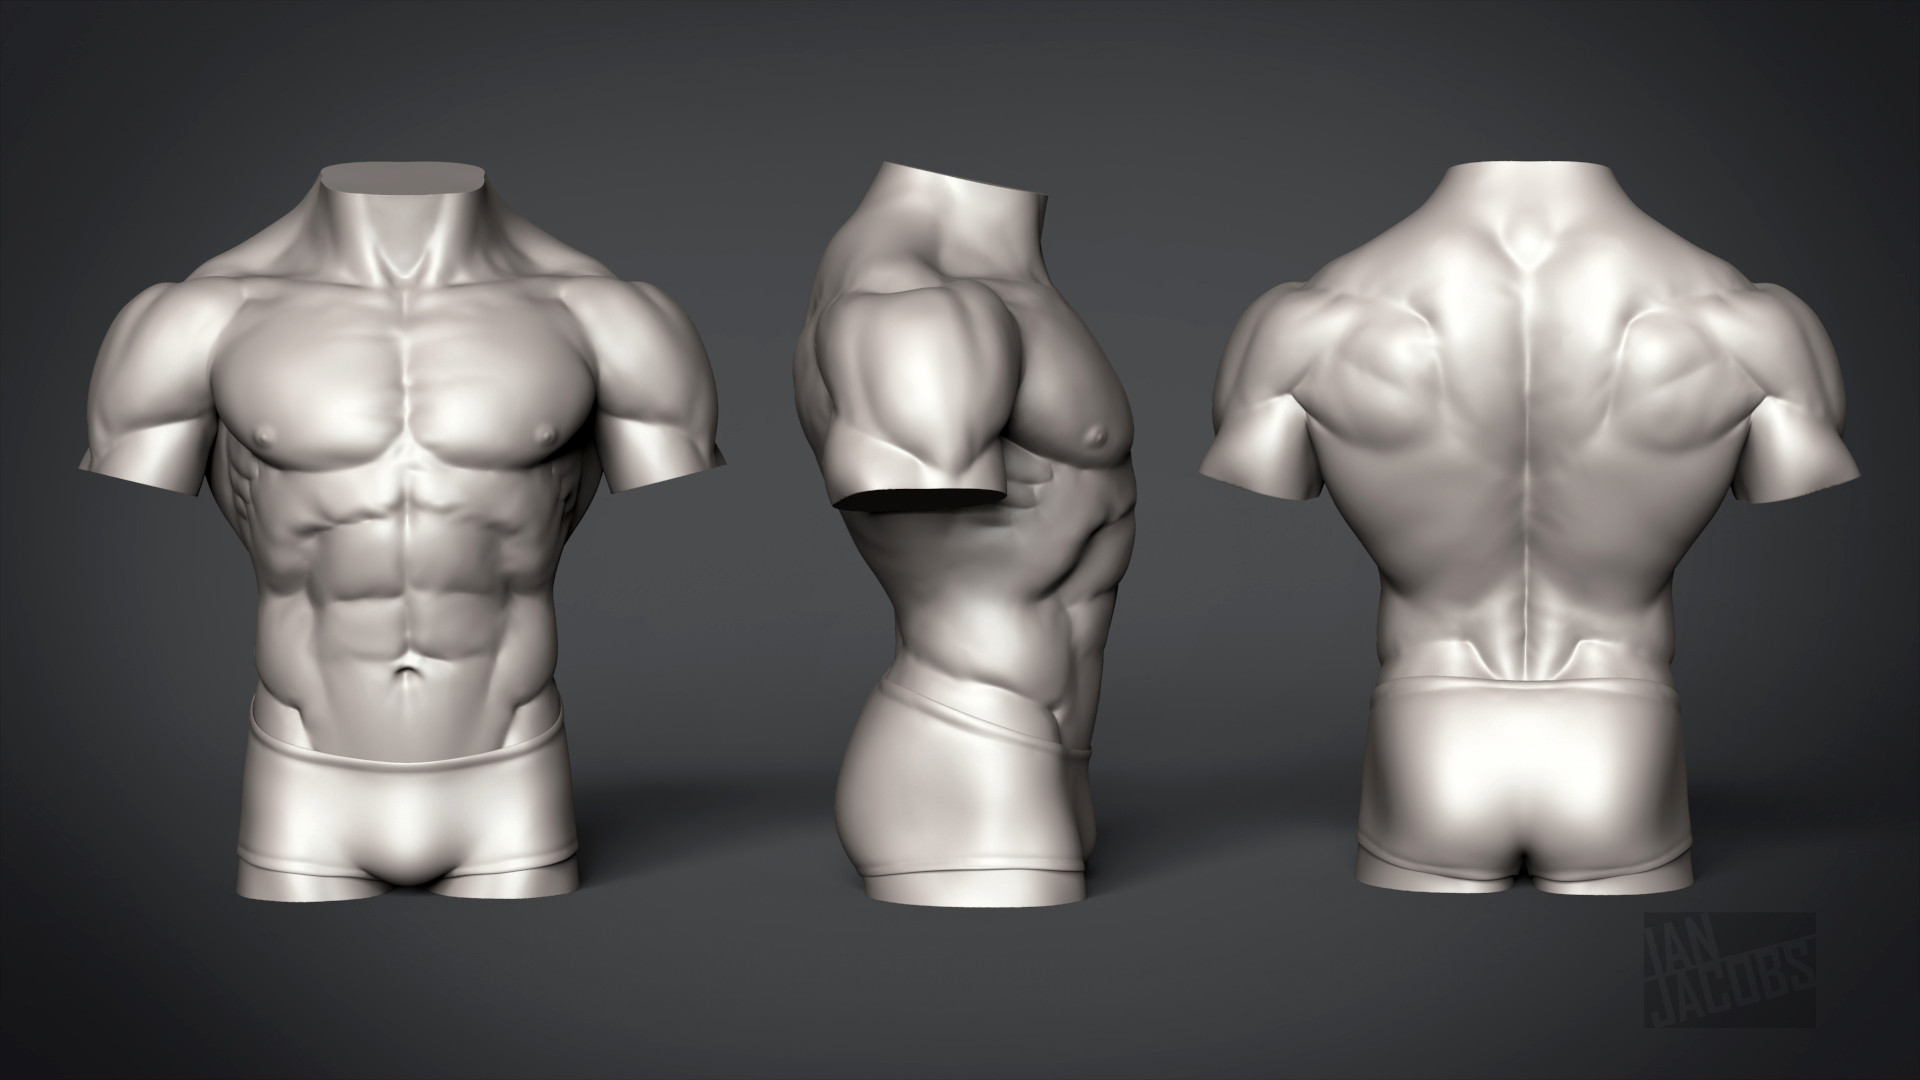 ArtStation - Male Torso - Anatomy Study, Ian Jacobs